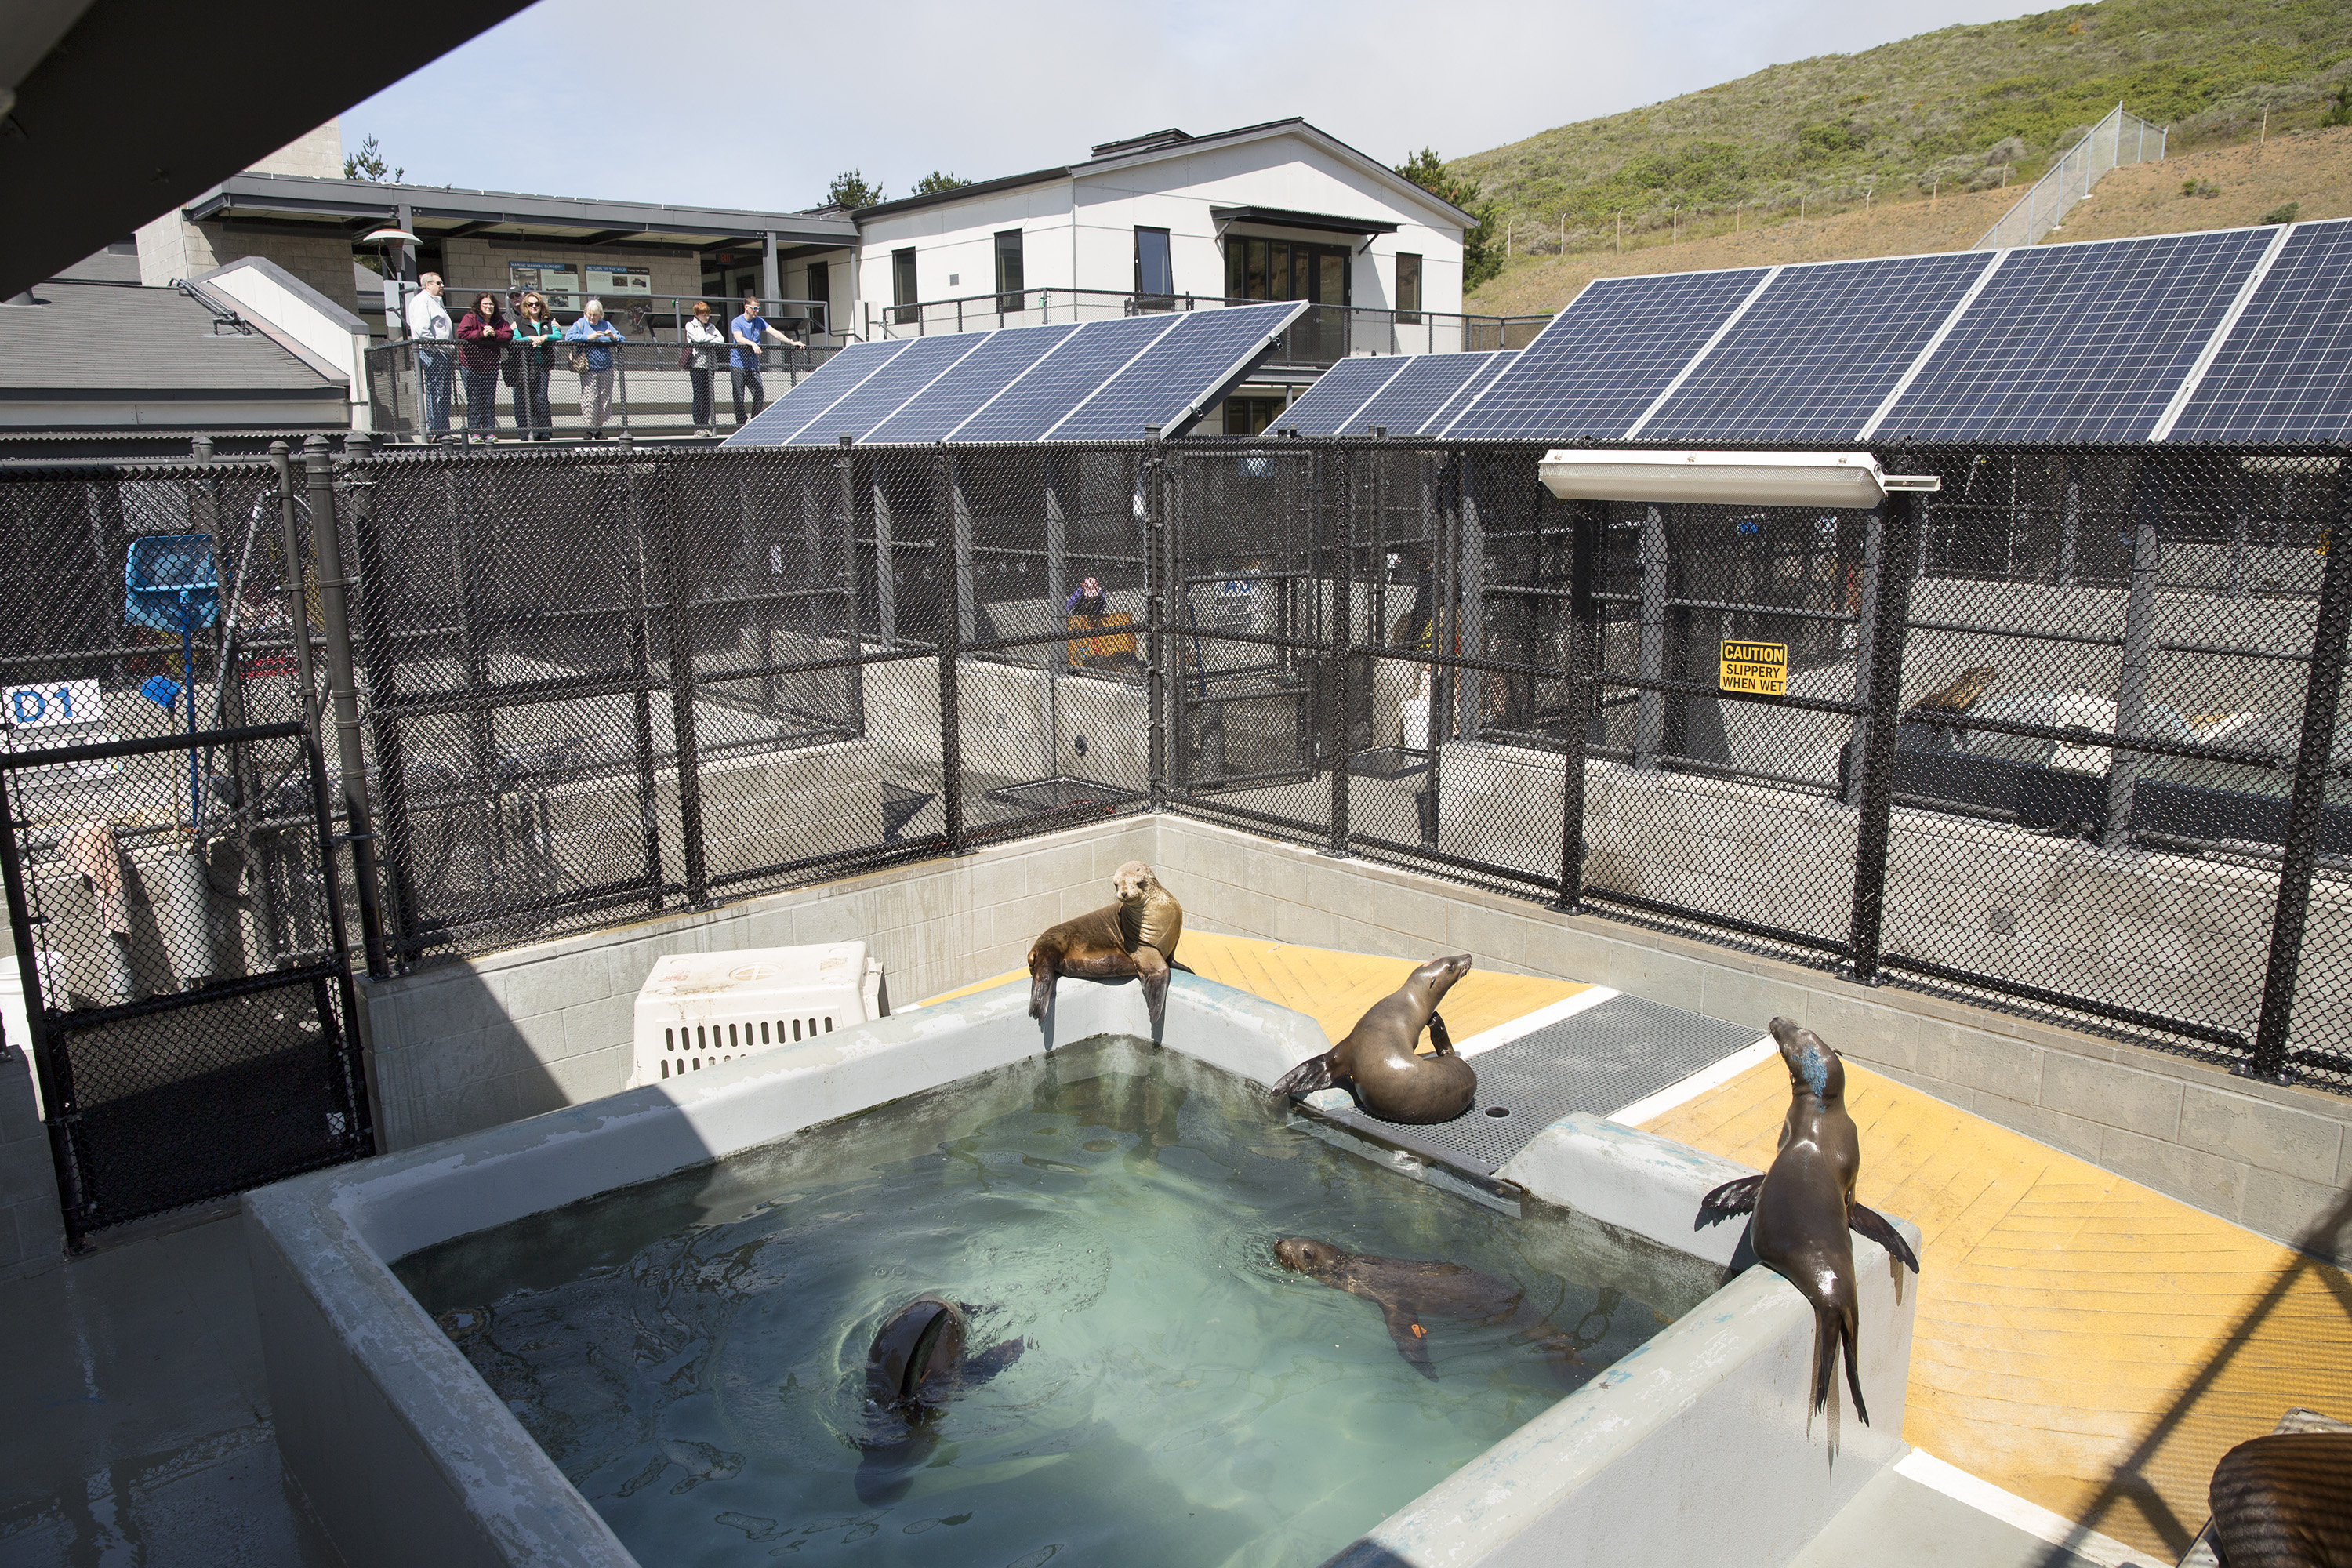 California sea lions swim  and sit out in the sun while visitors look on at the Marine Mammal Center in Marin County, Calif. on May 9, 2014.